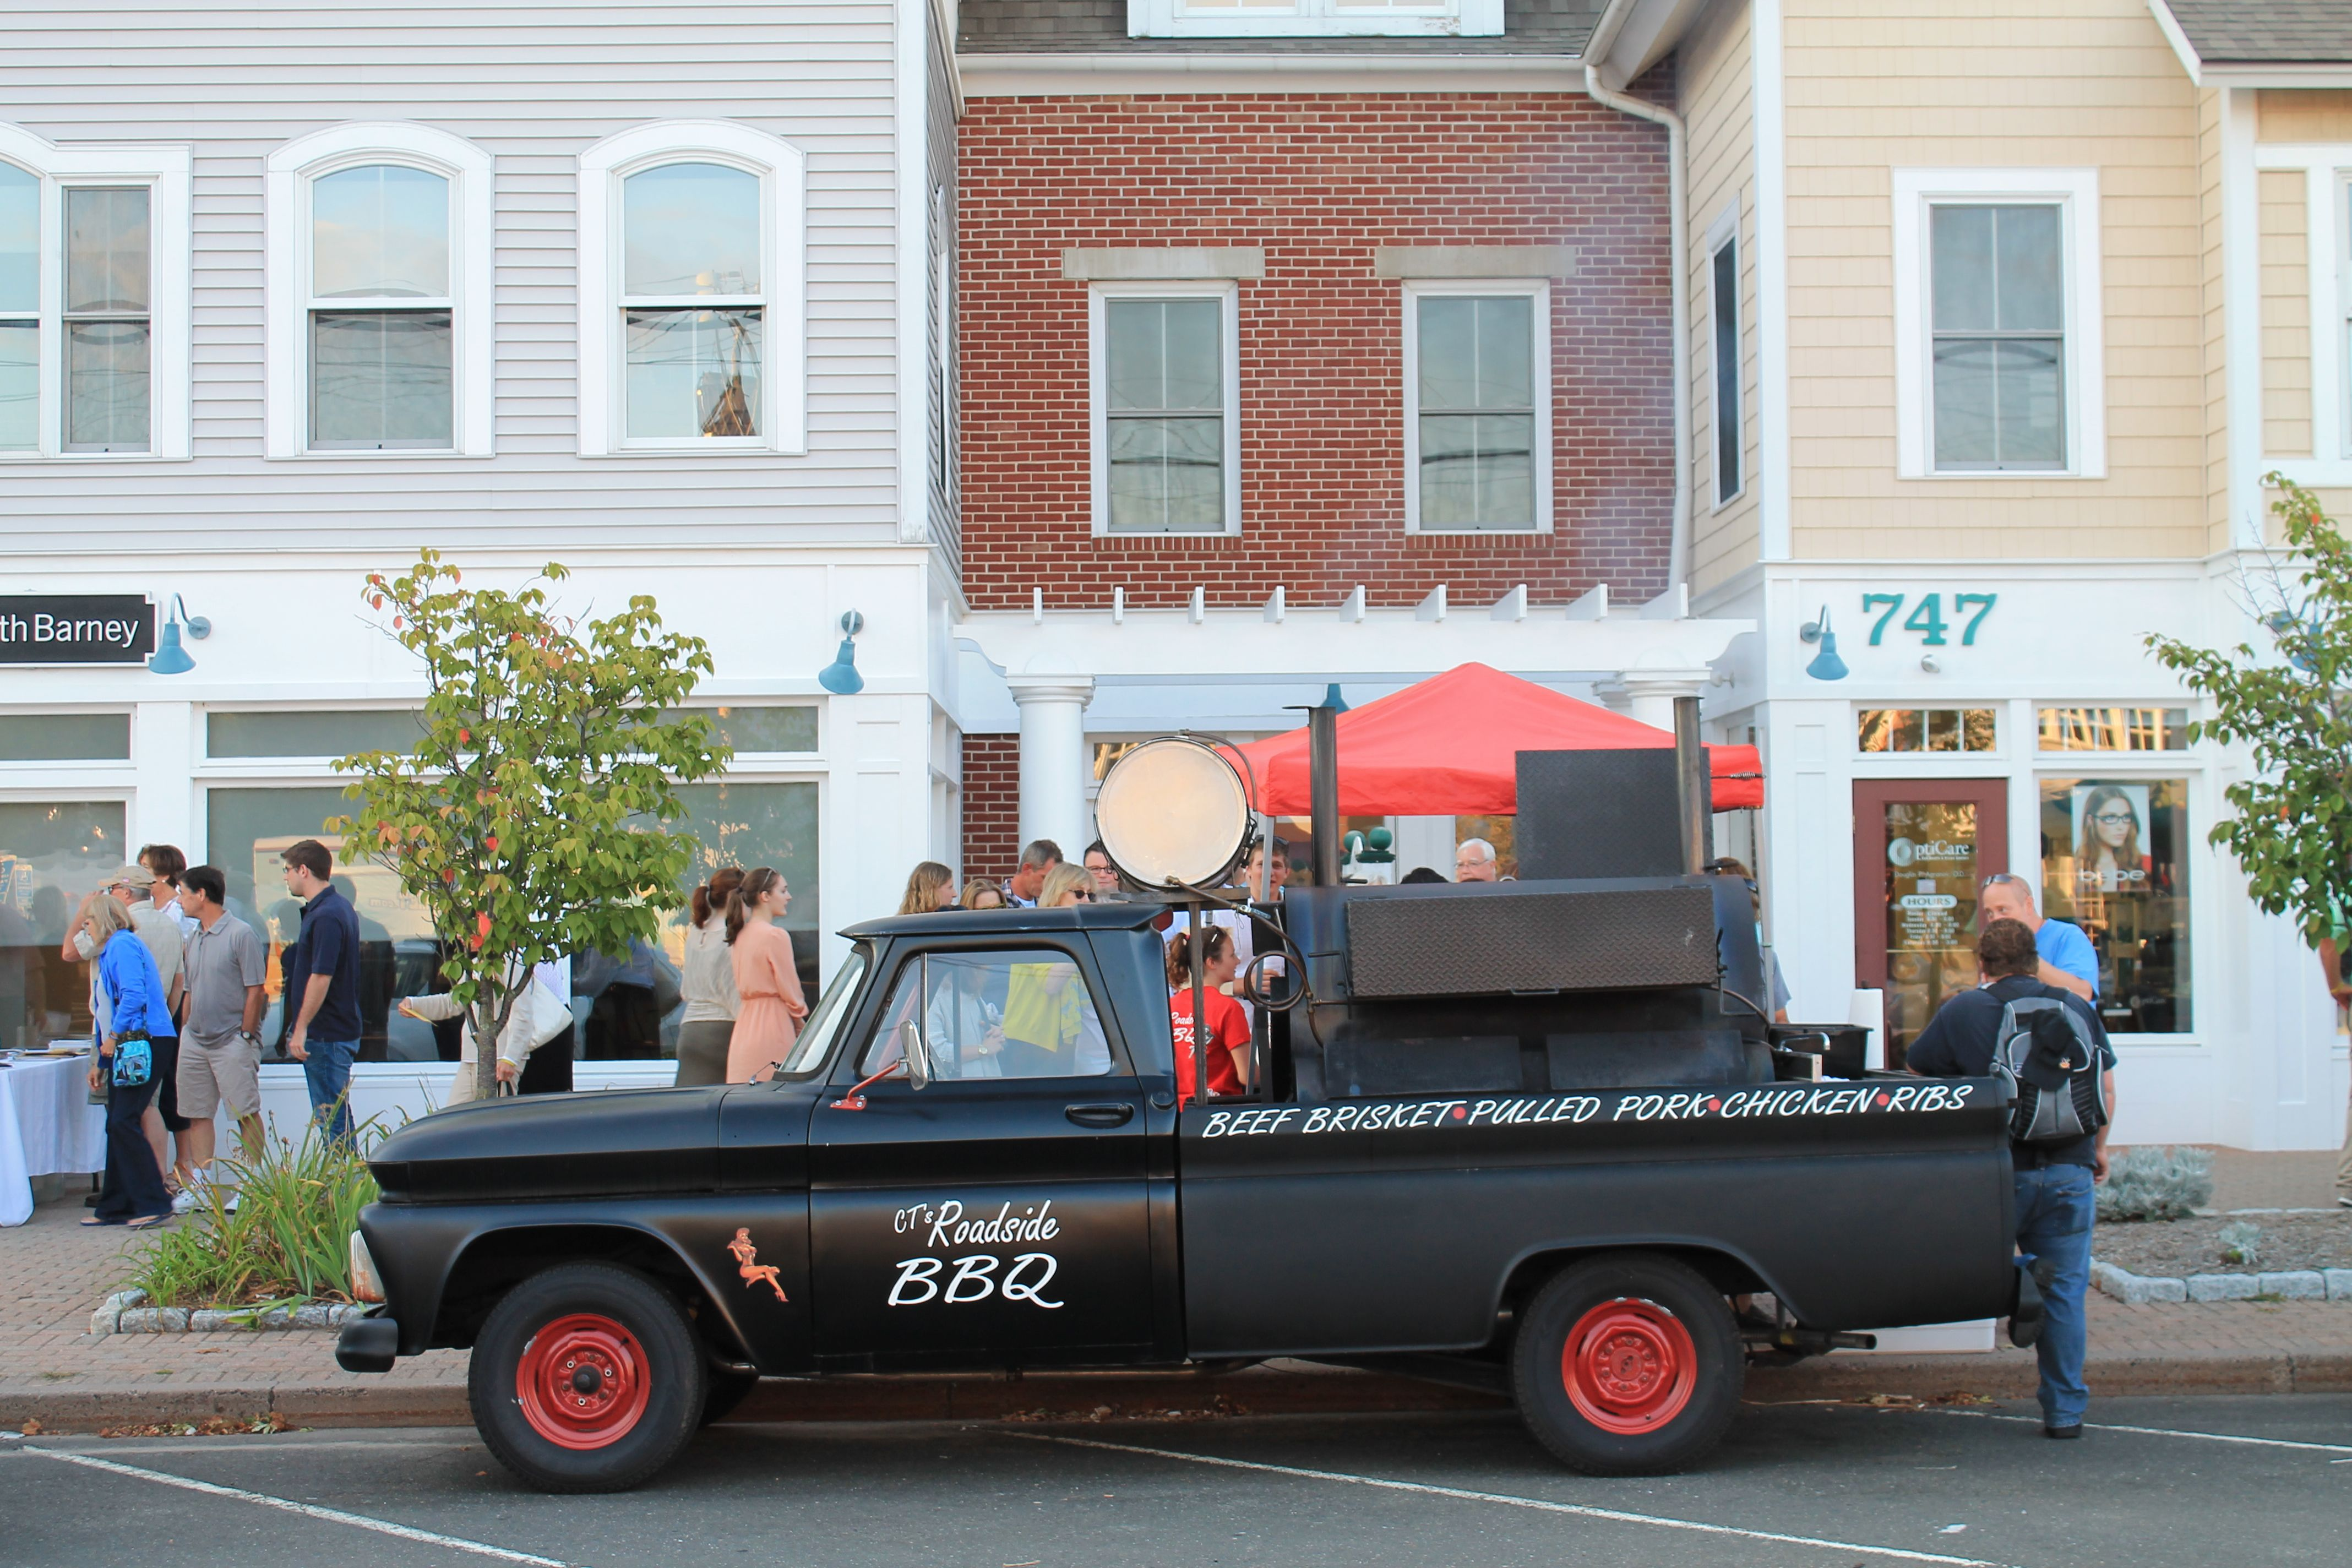 Find our favorite food truck, CT's Roadside BBQ, in front